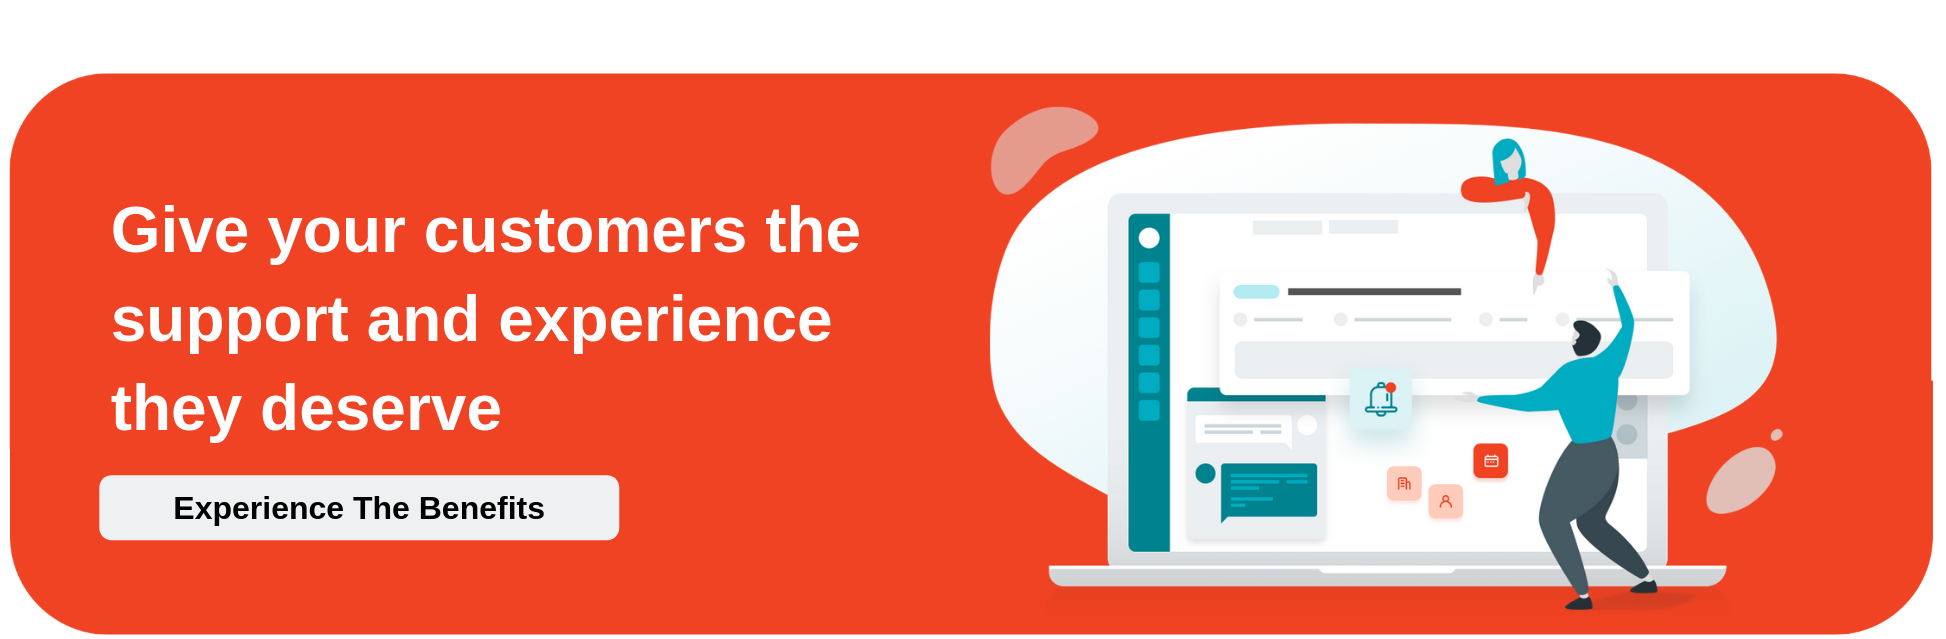 Give your customers the support and experience they deserve